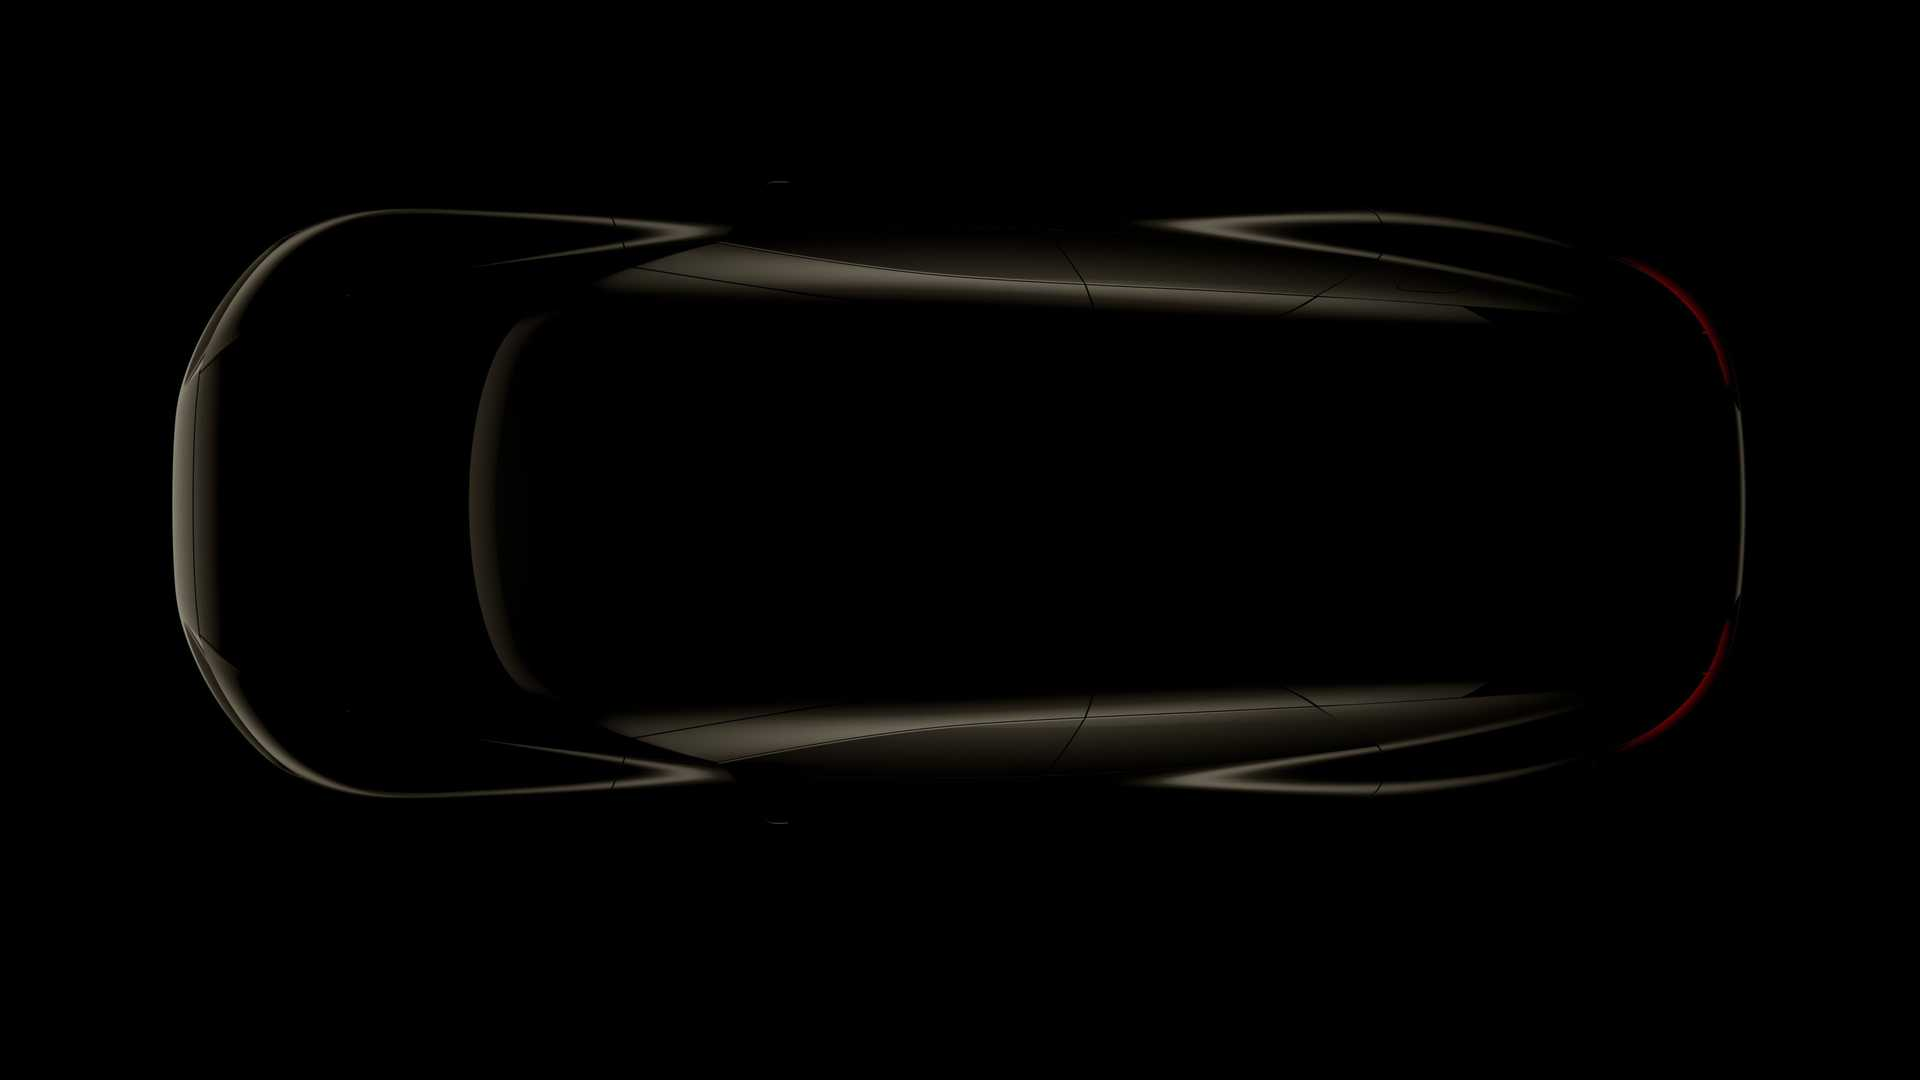 Audi-Grand-Sphere-concept-teasers-1